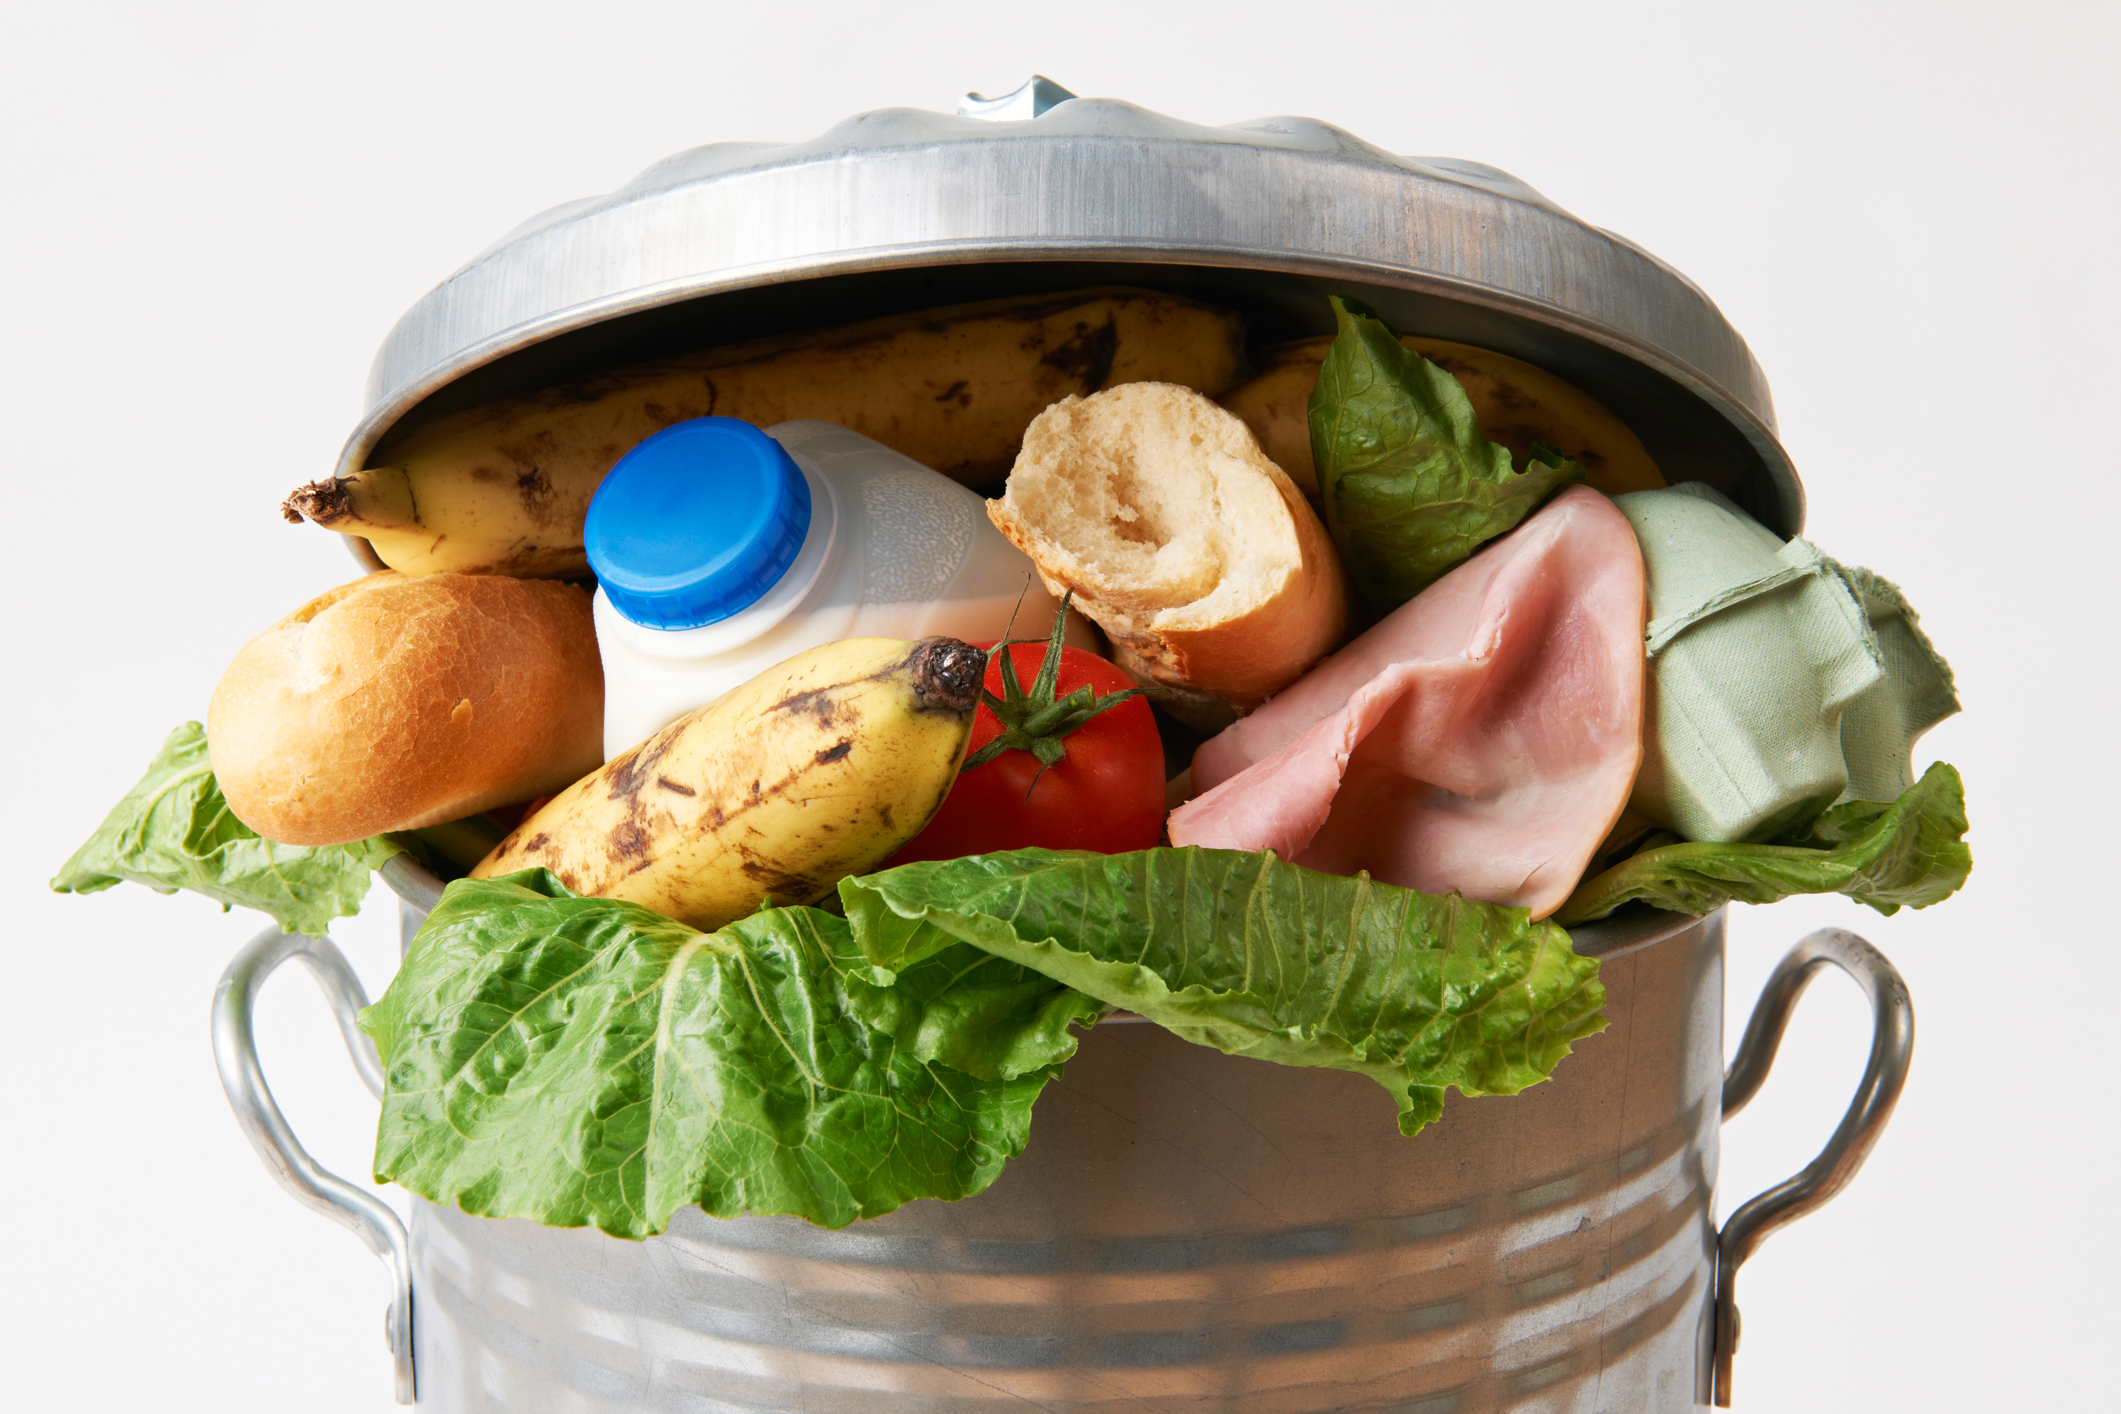 Fresh Food In Garbage Can Going to Waste